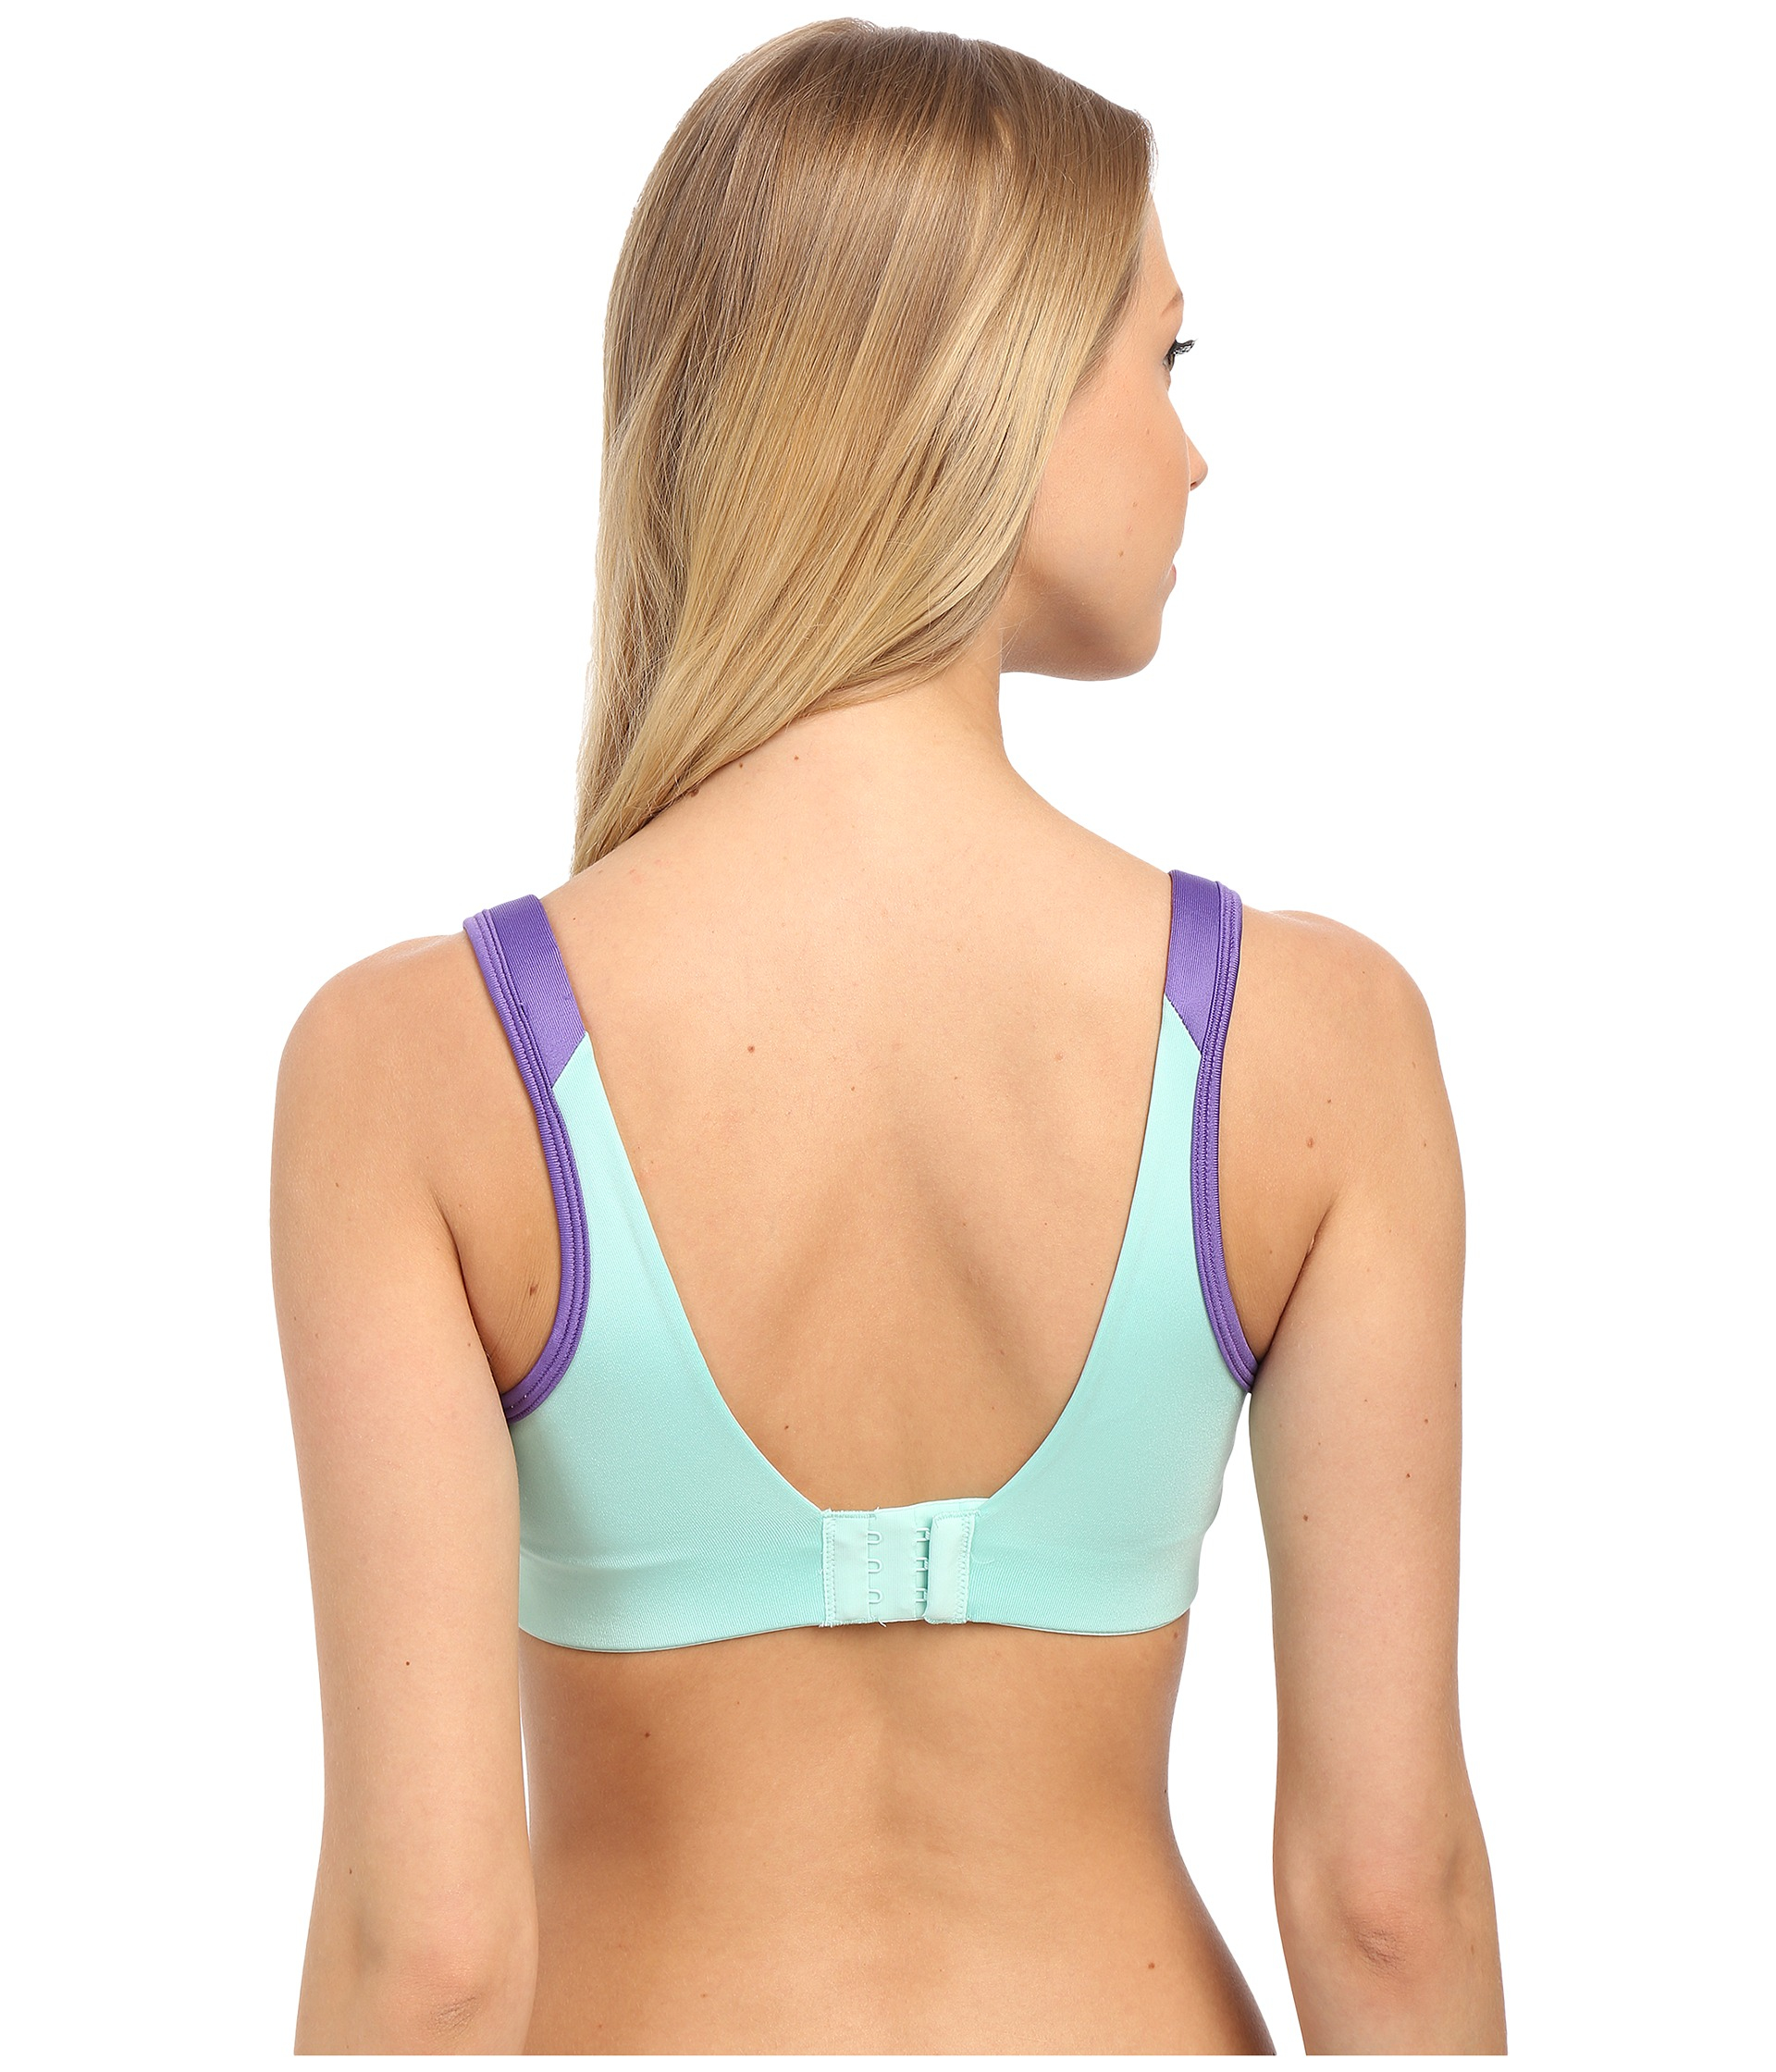 72eaa44e98 Jubralee Bra By Moving Comfort. Moving Comfort Jubralee Sports Bra ...